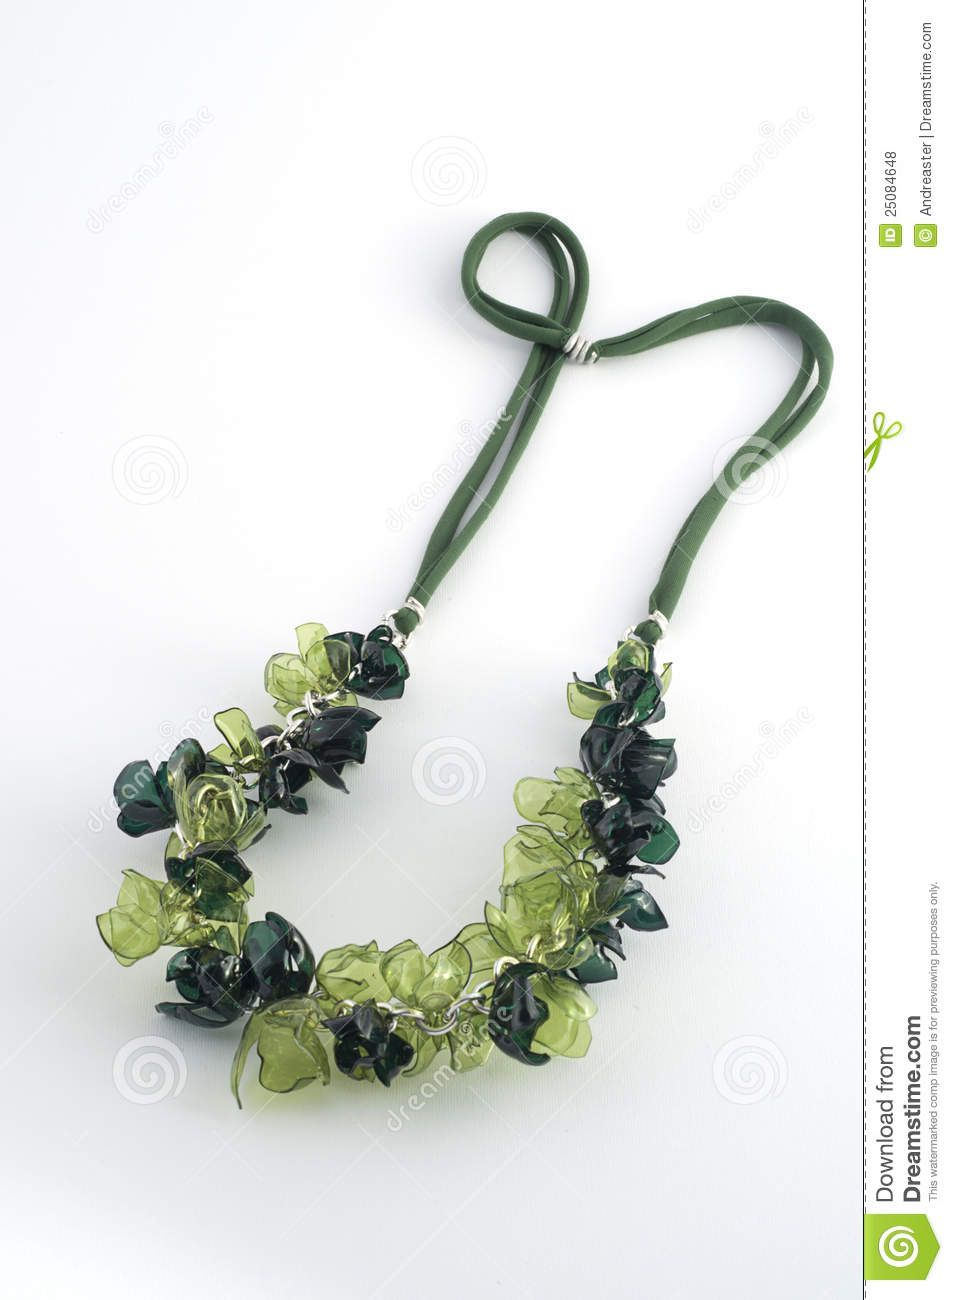 Ecojewelry Necklace From Recycled Plastic Bottles - Download From ...